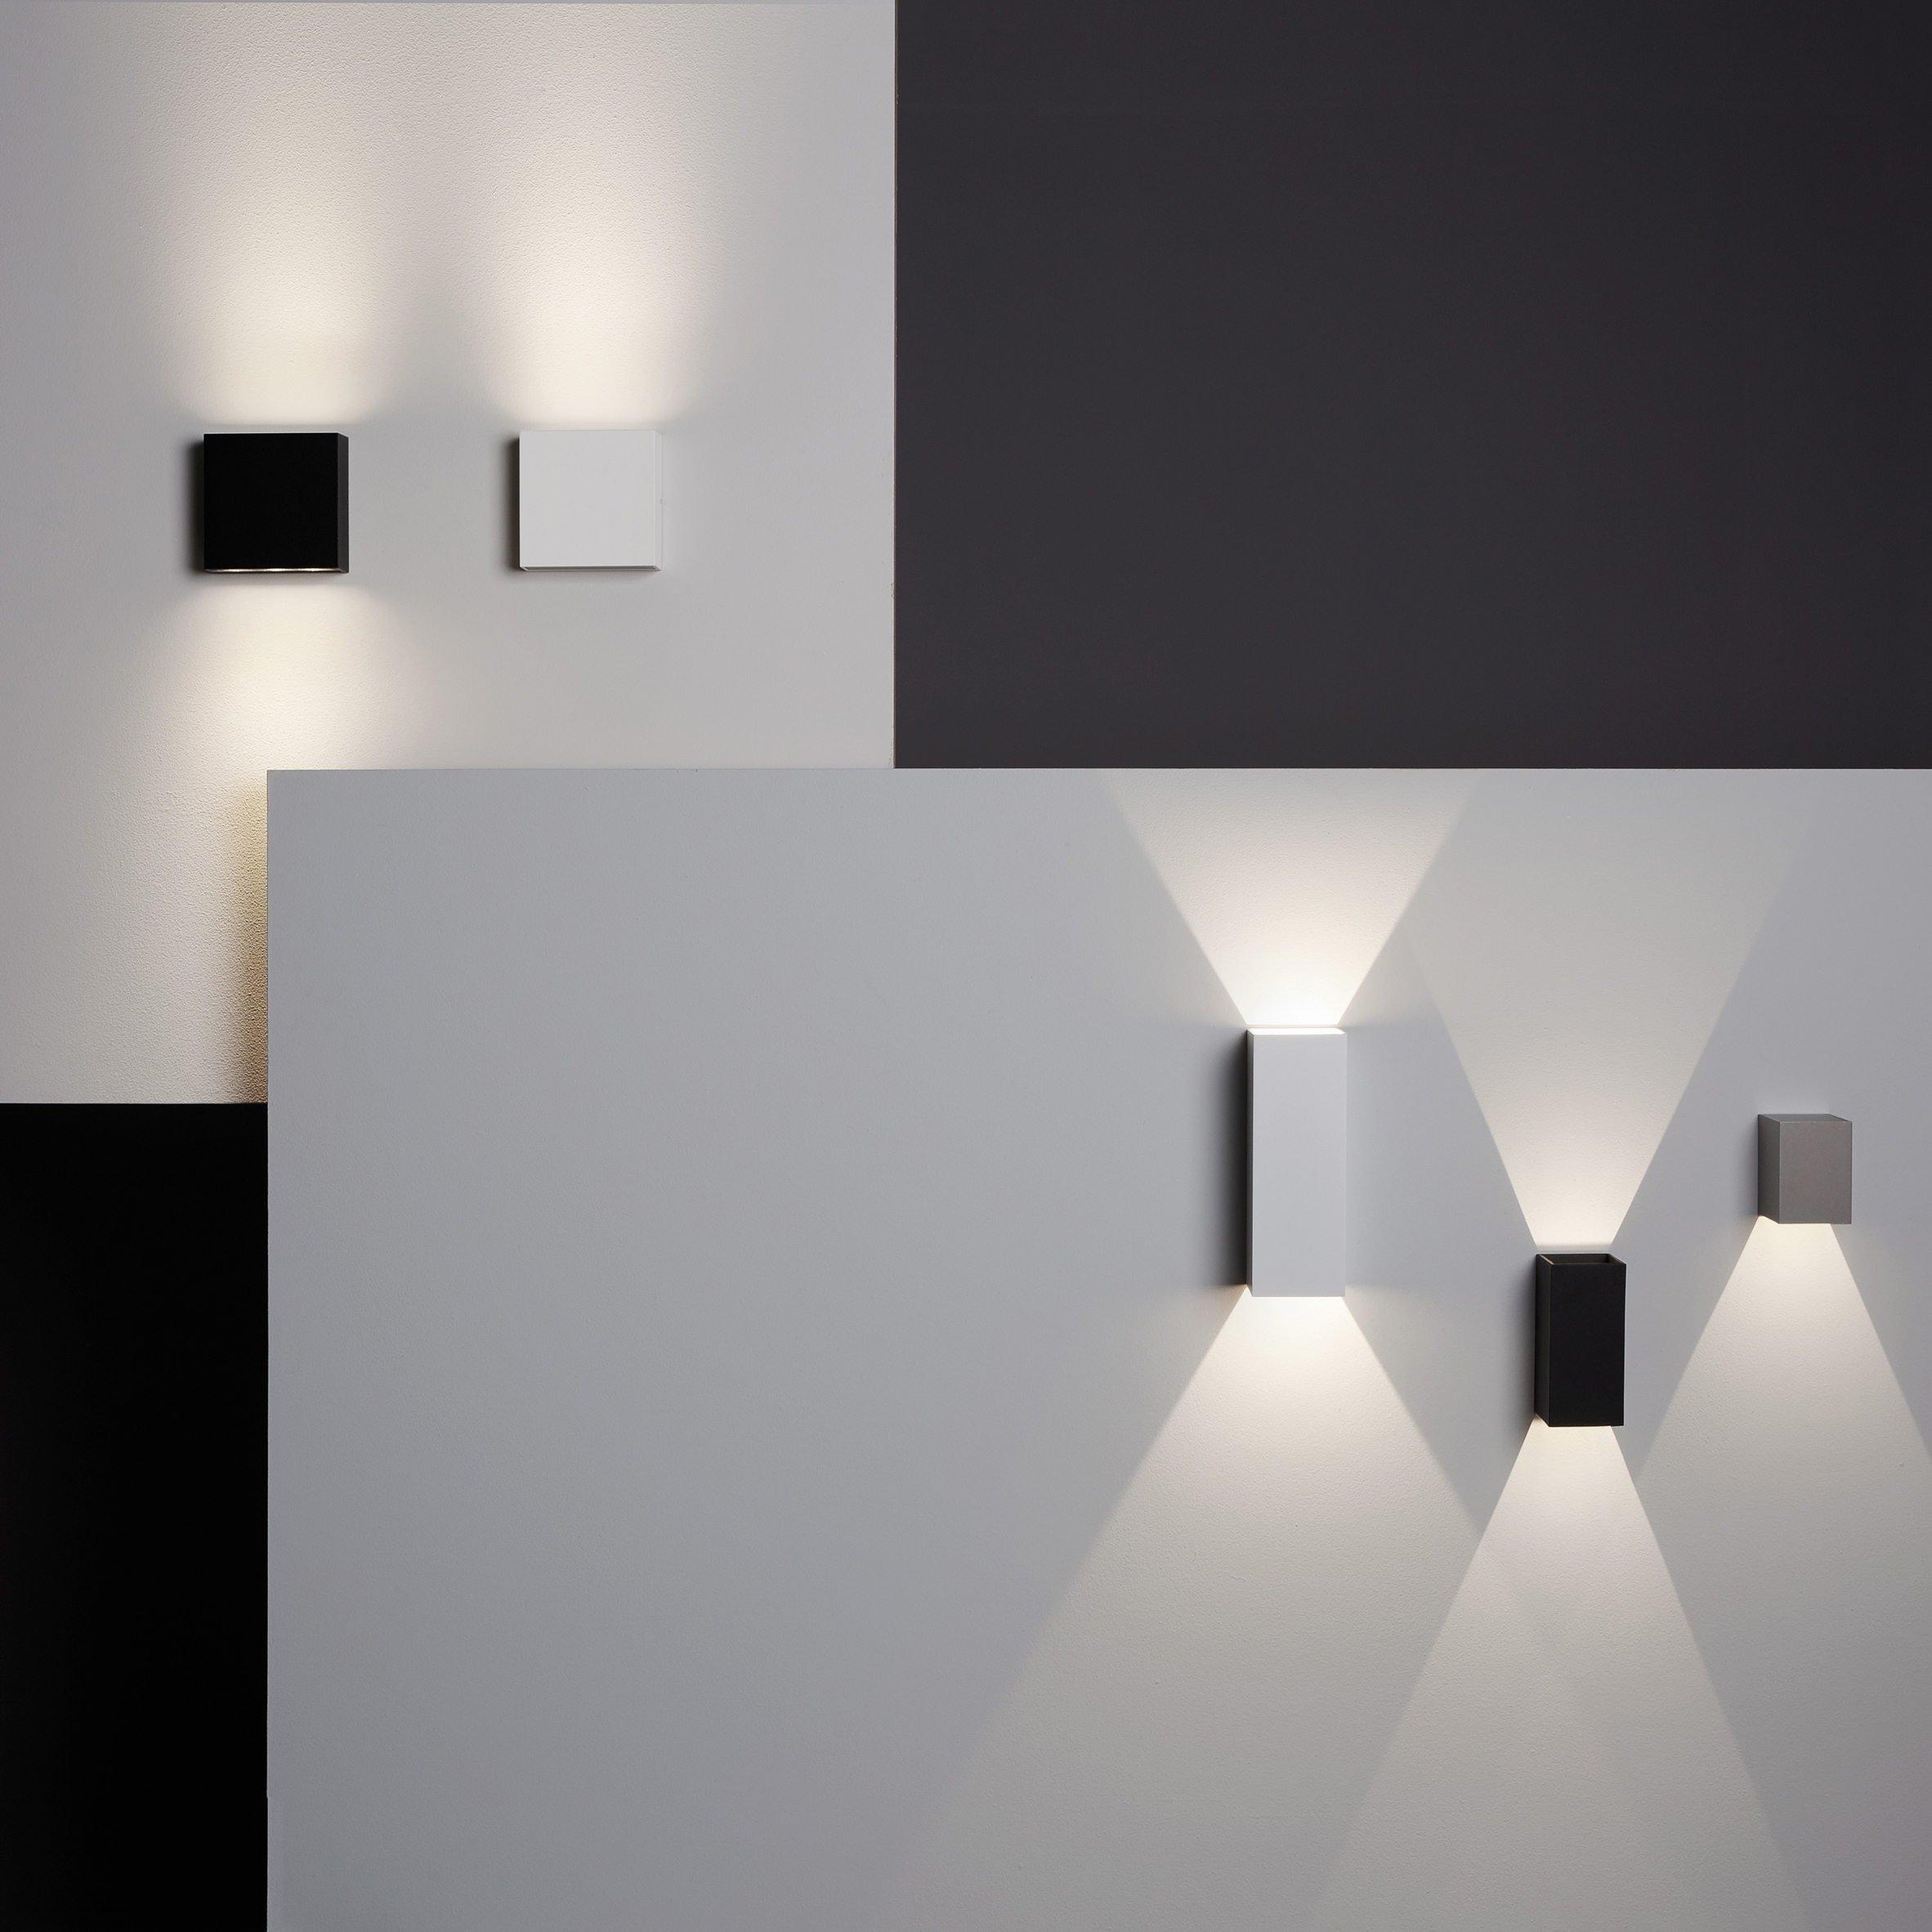 Astro's architectural lighting collection lets a building